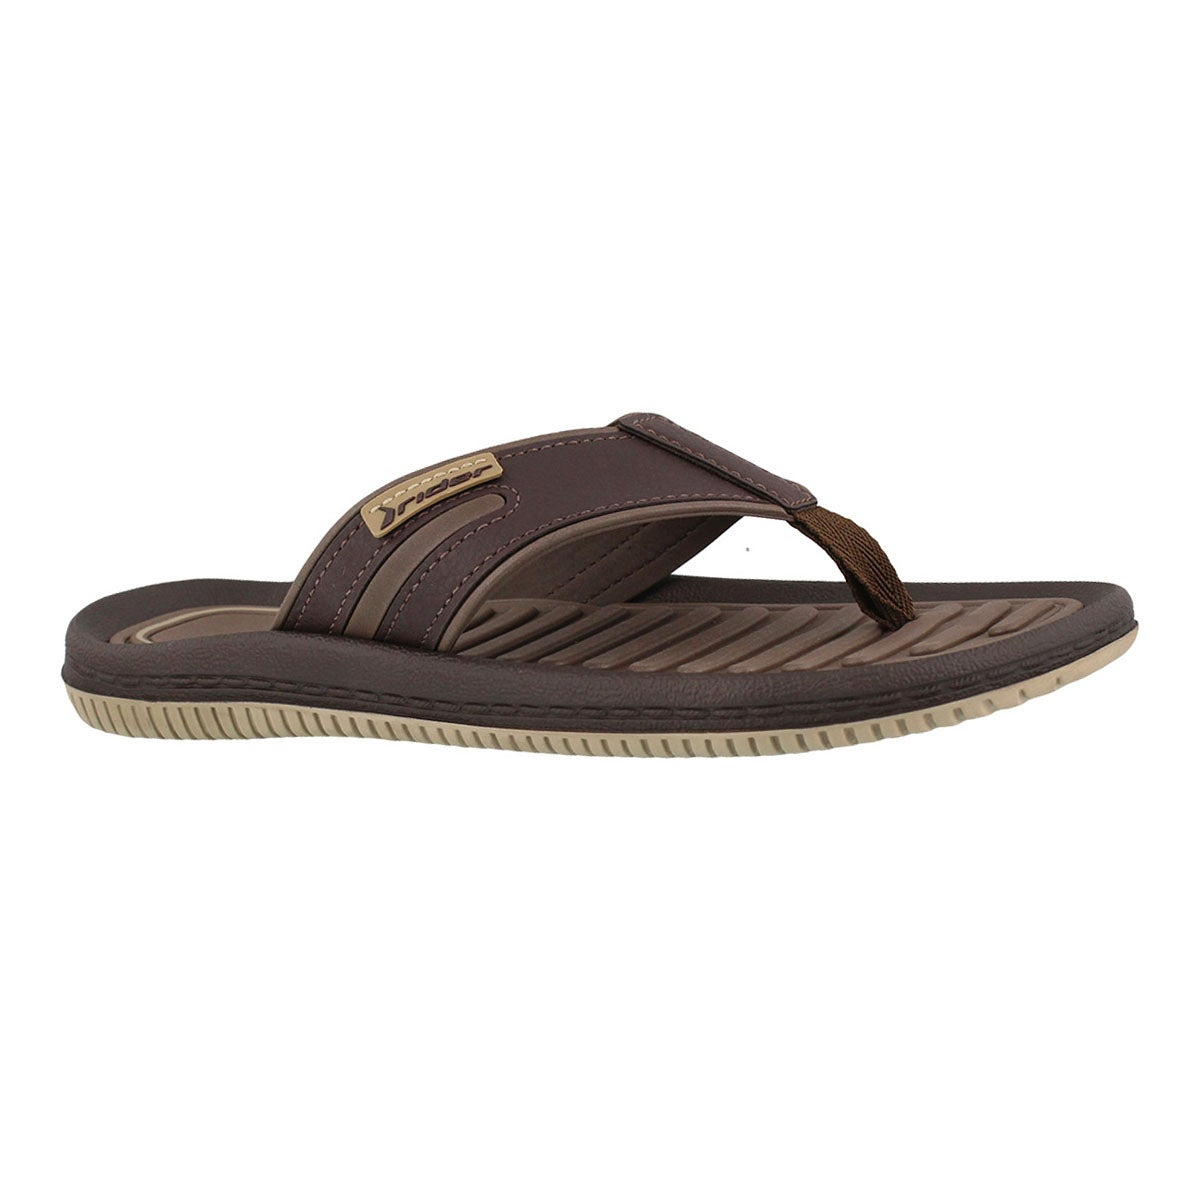 Men's DUNAS XV beige/brown thong sandals